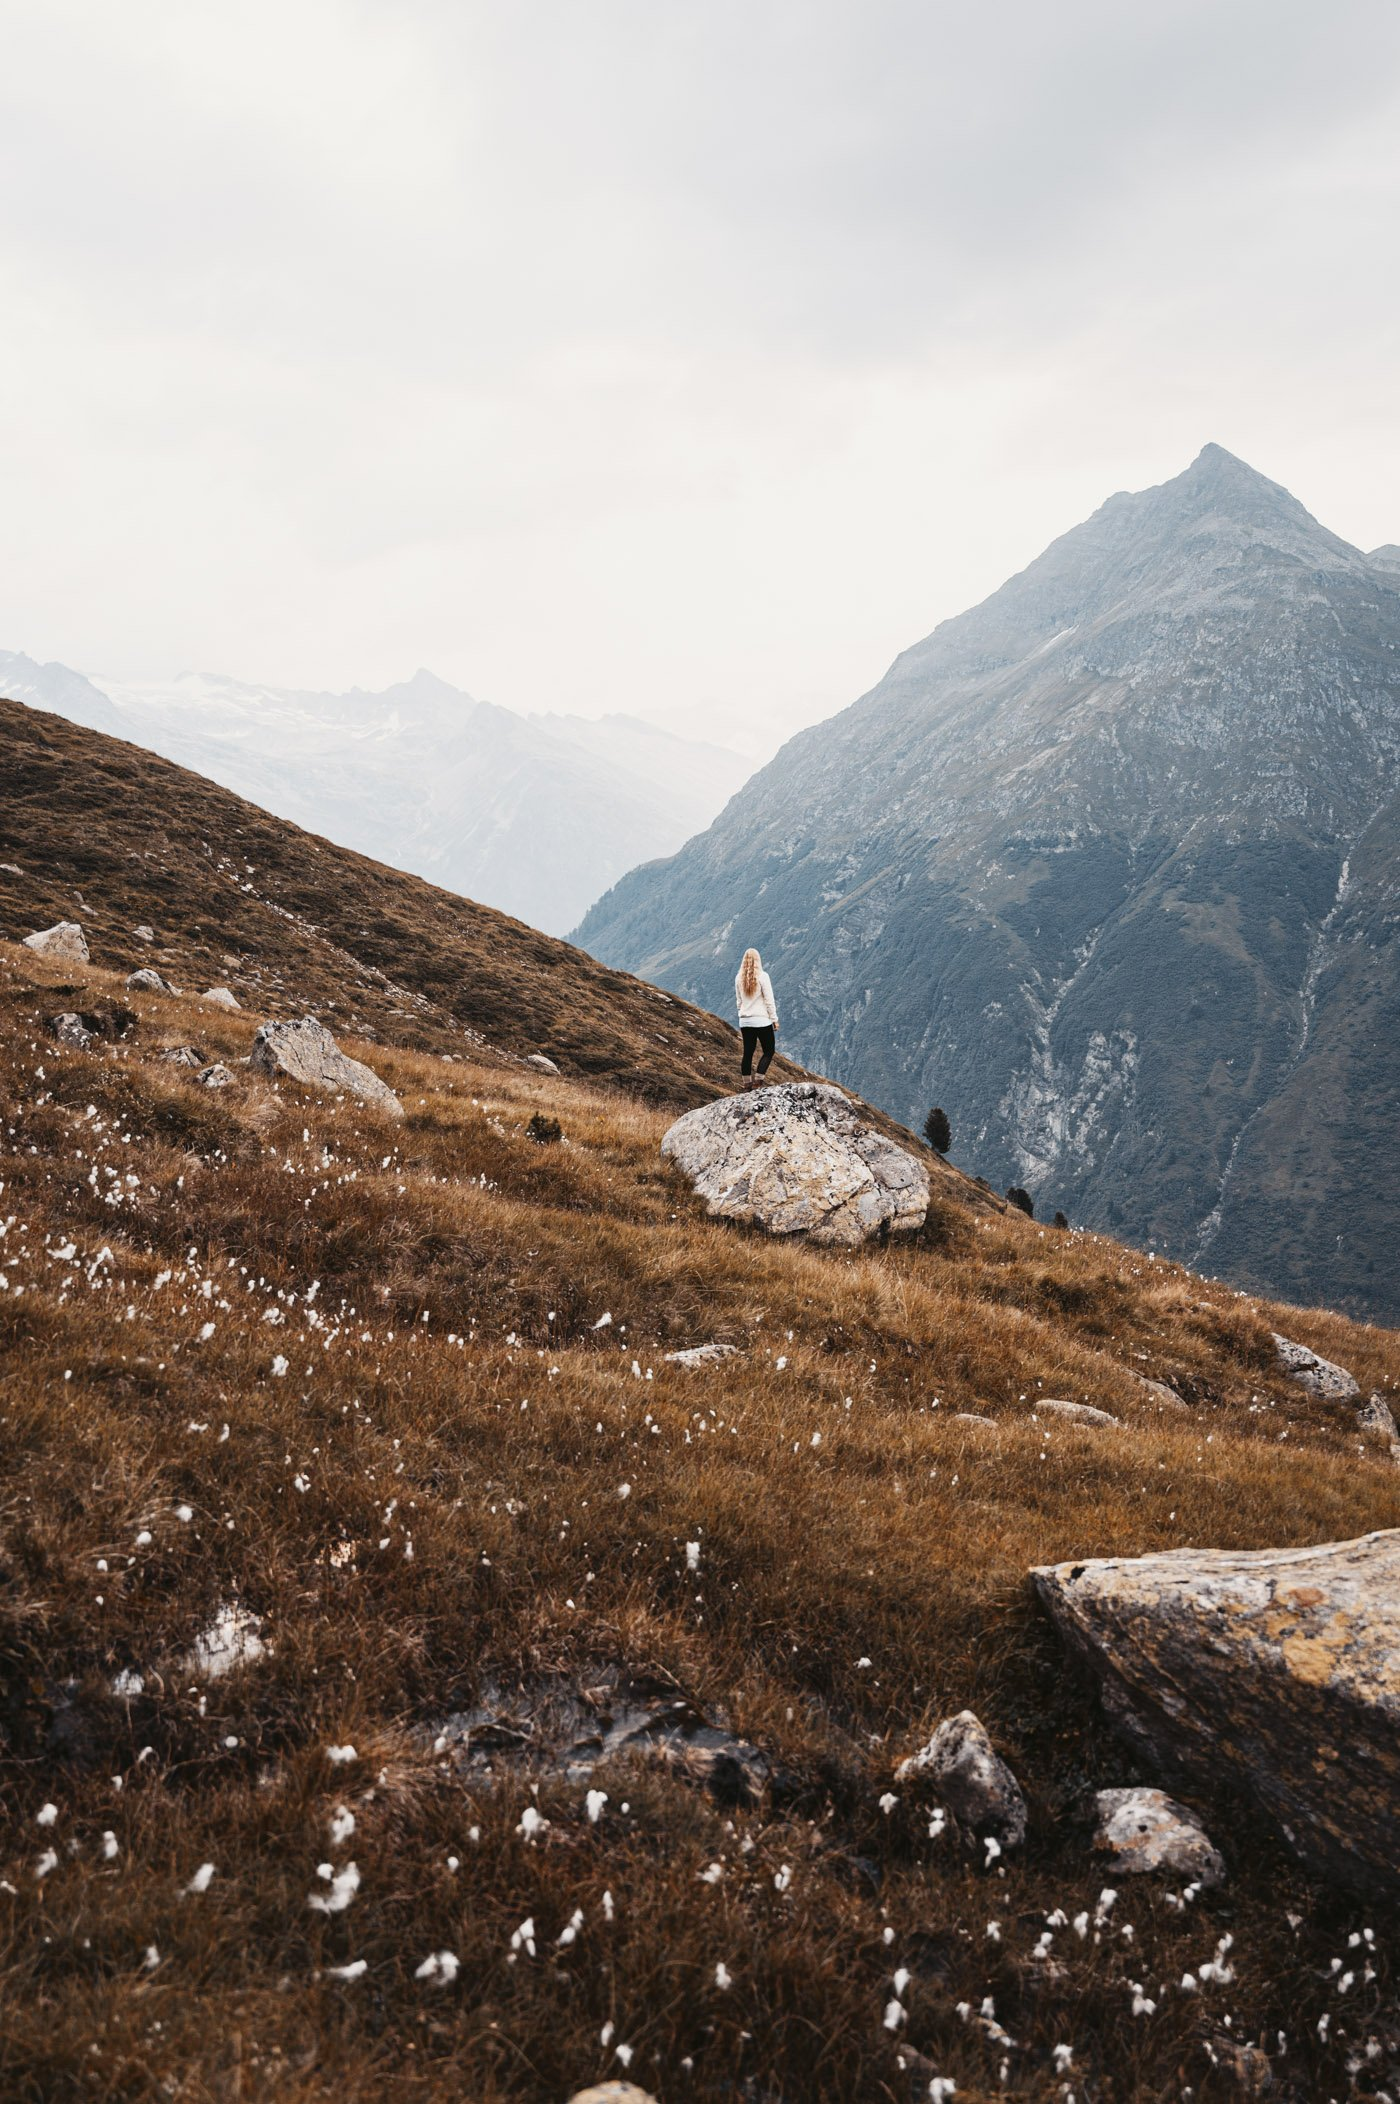 Mindful mountain experiences